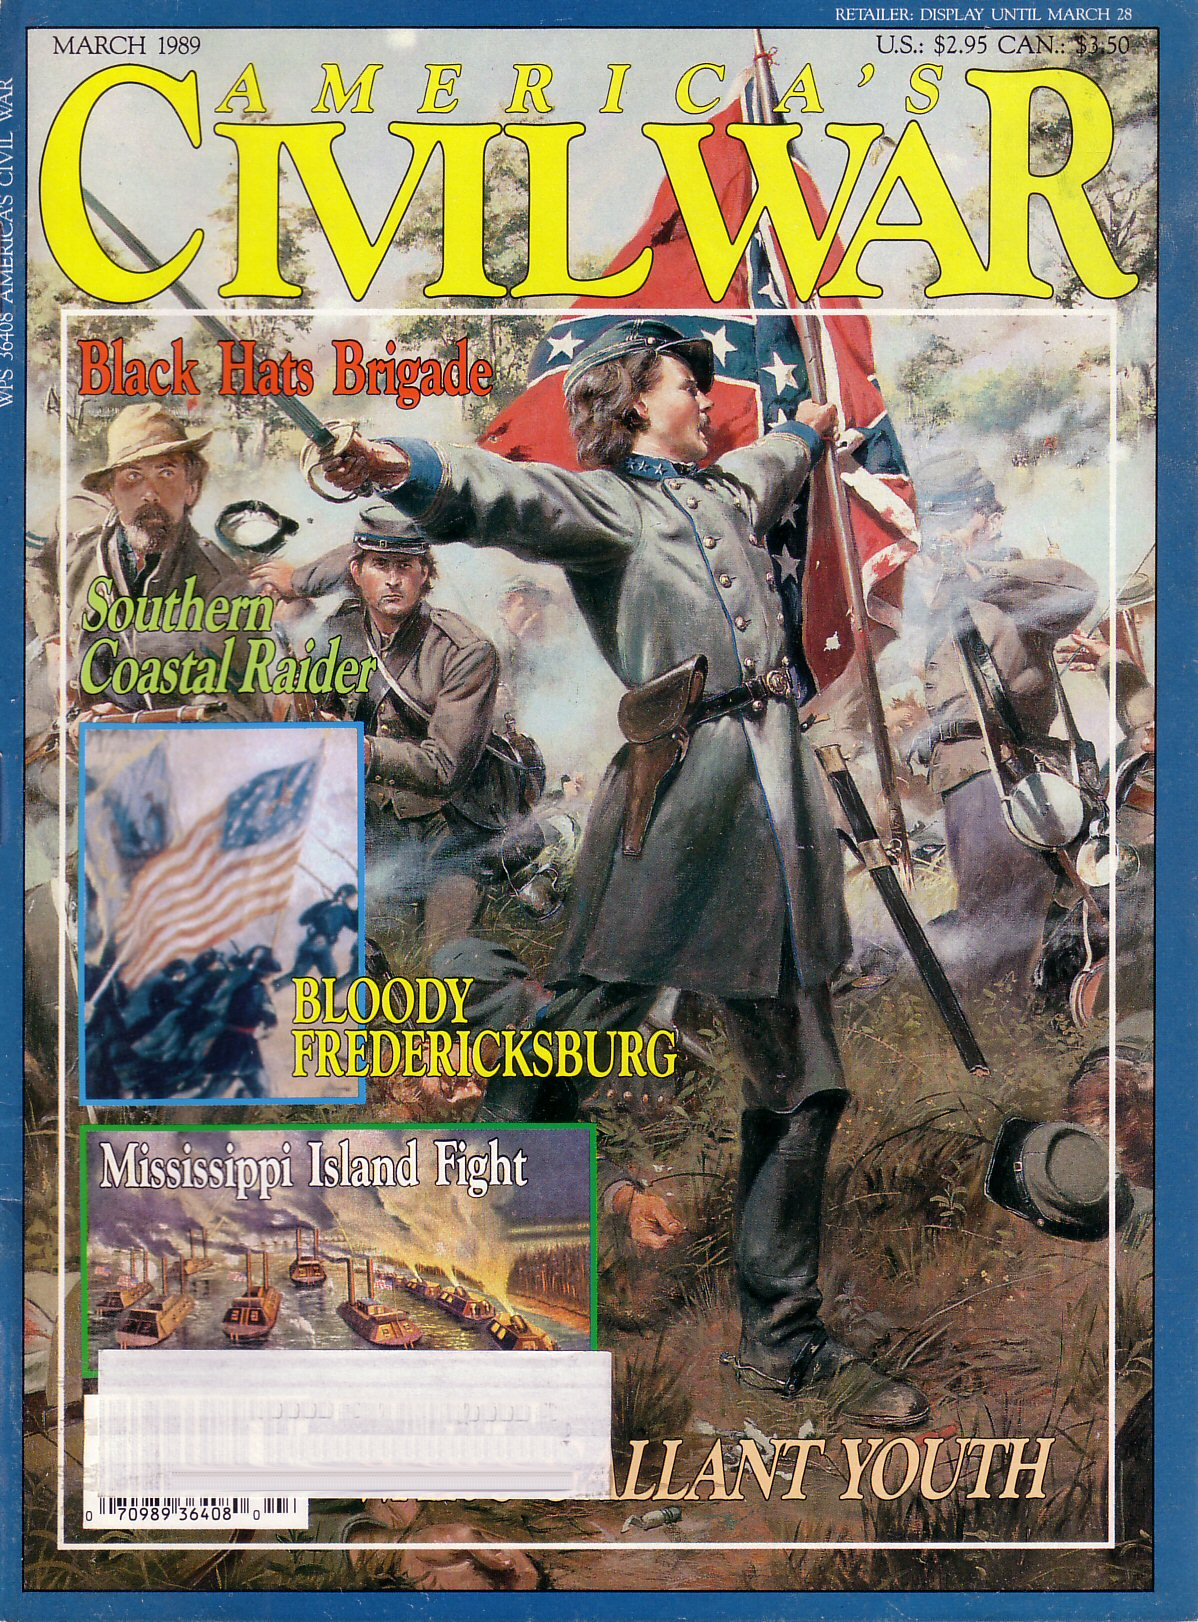 Americas Civil War, Volume 1, Number 6 (March 1989)